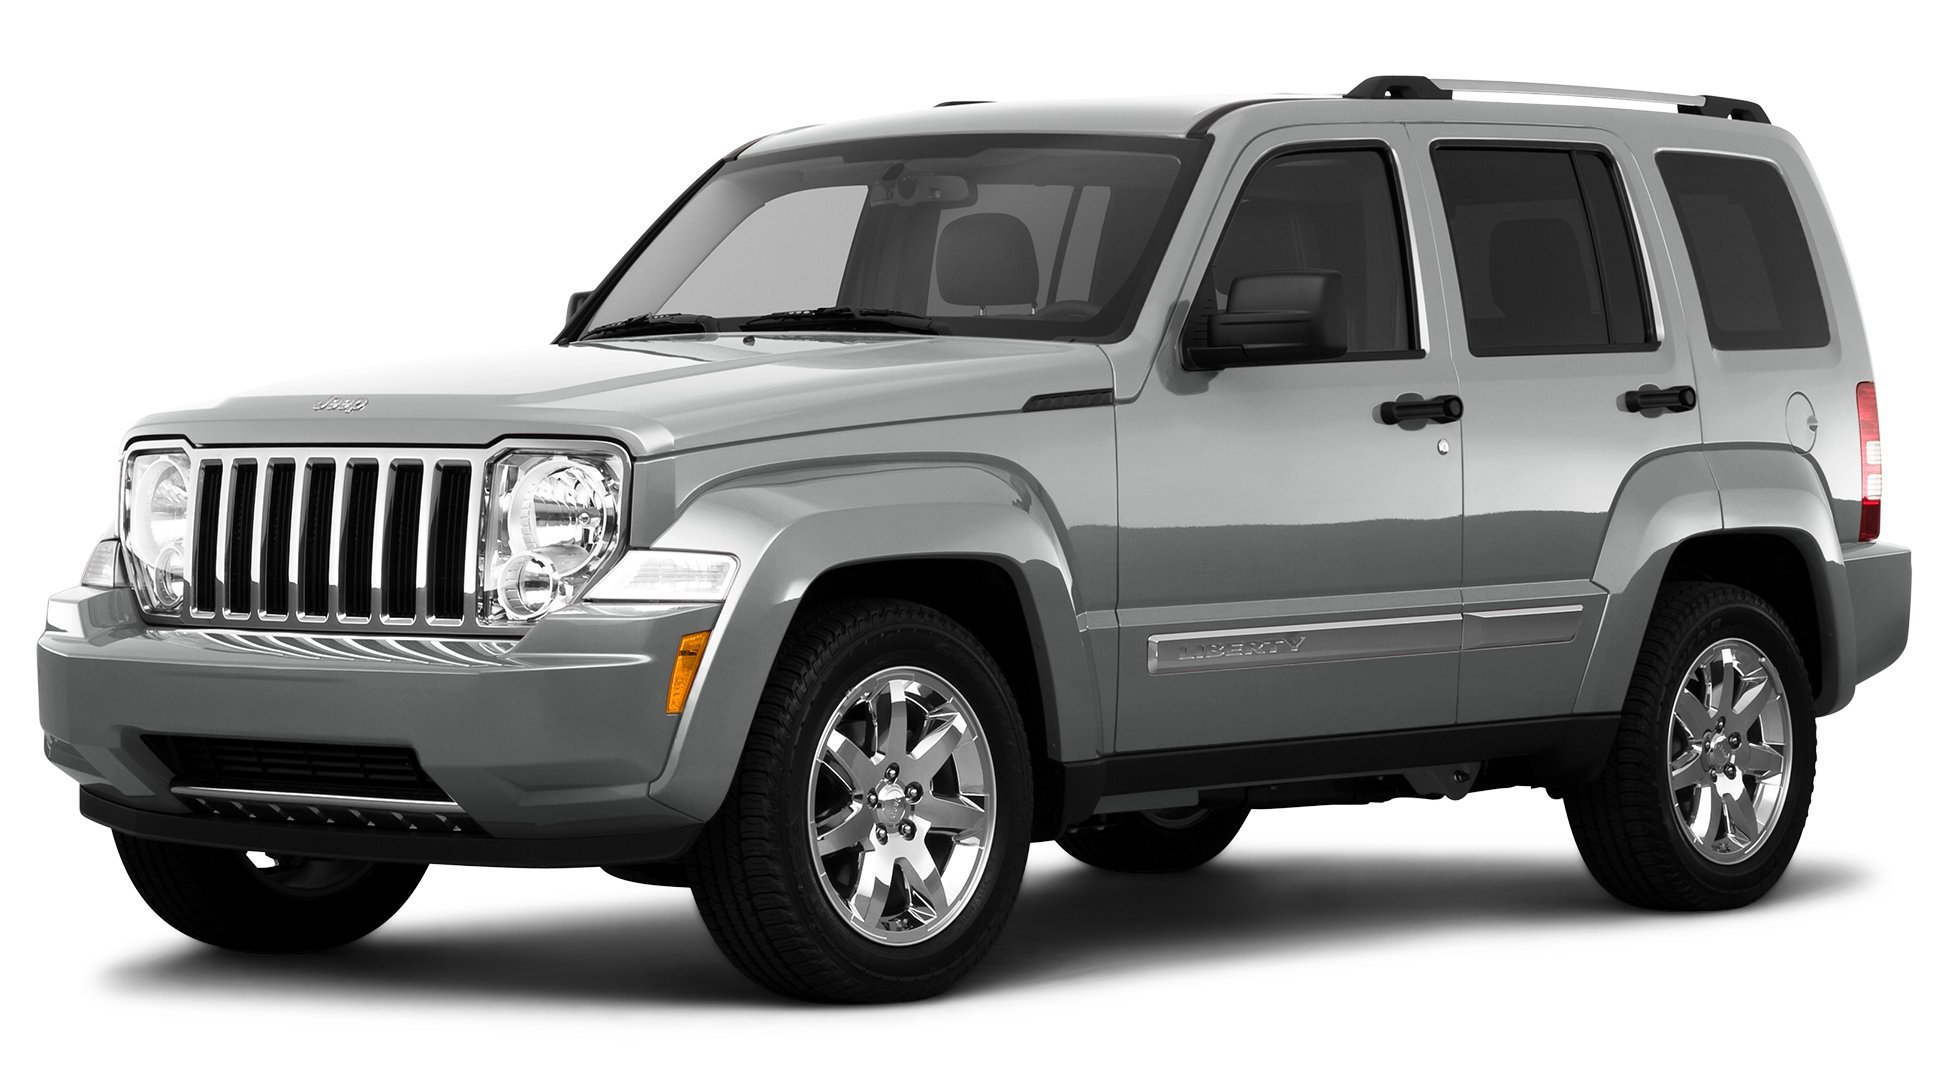 amazon com 2010 jeep liberty reviews images and specs vehicles rh amazon com 2004 jeep liberty renegade owners manual 2004 jeep liberty renegade owners manual